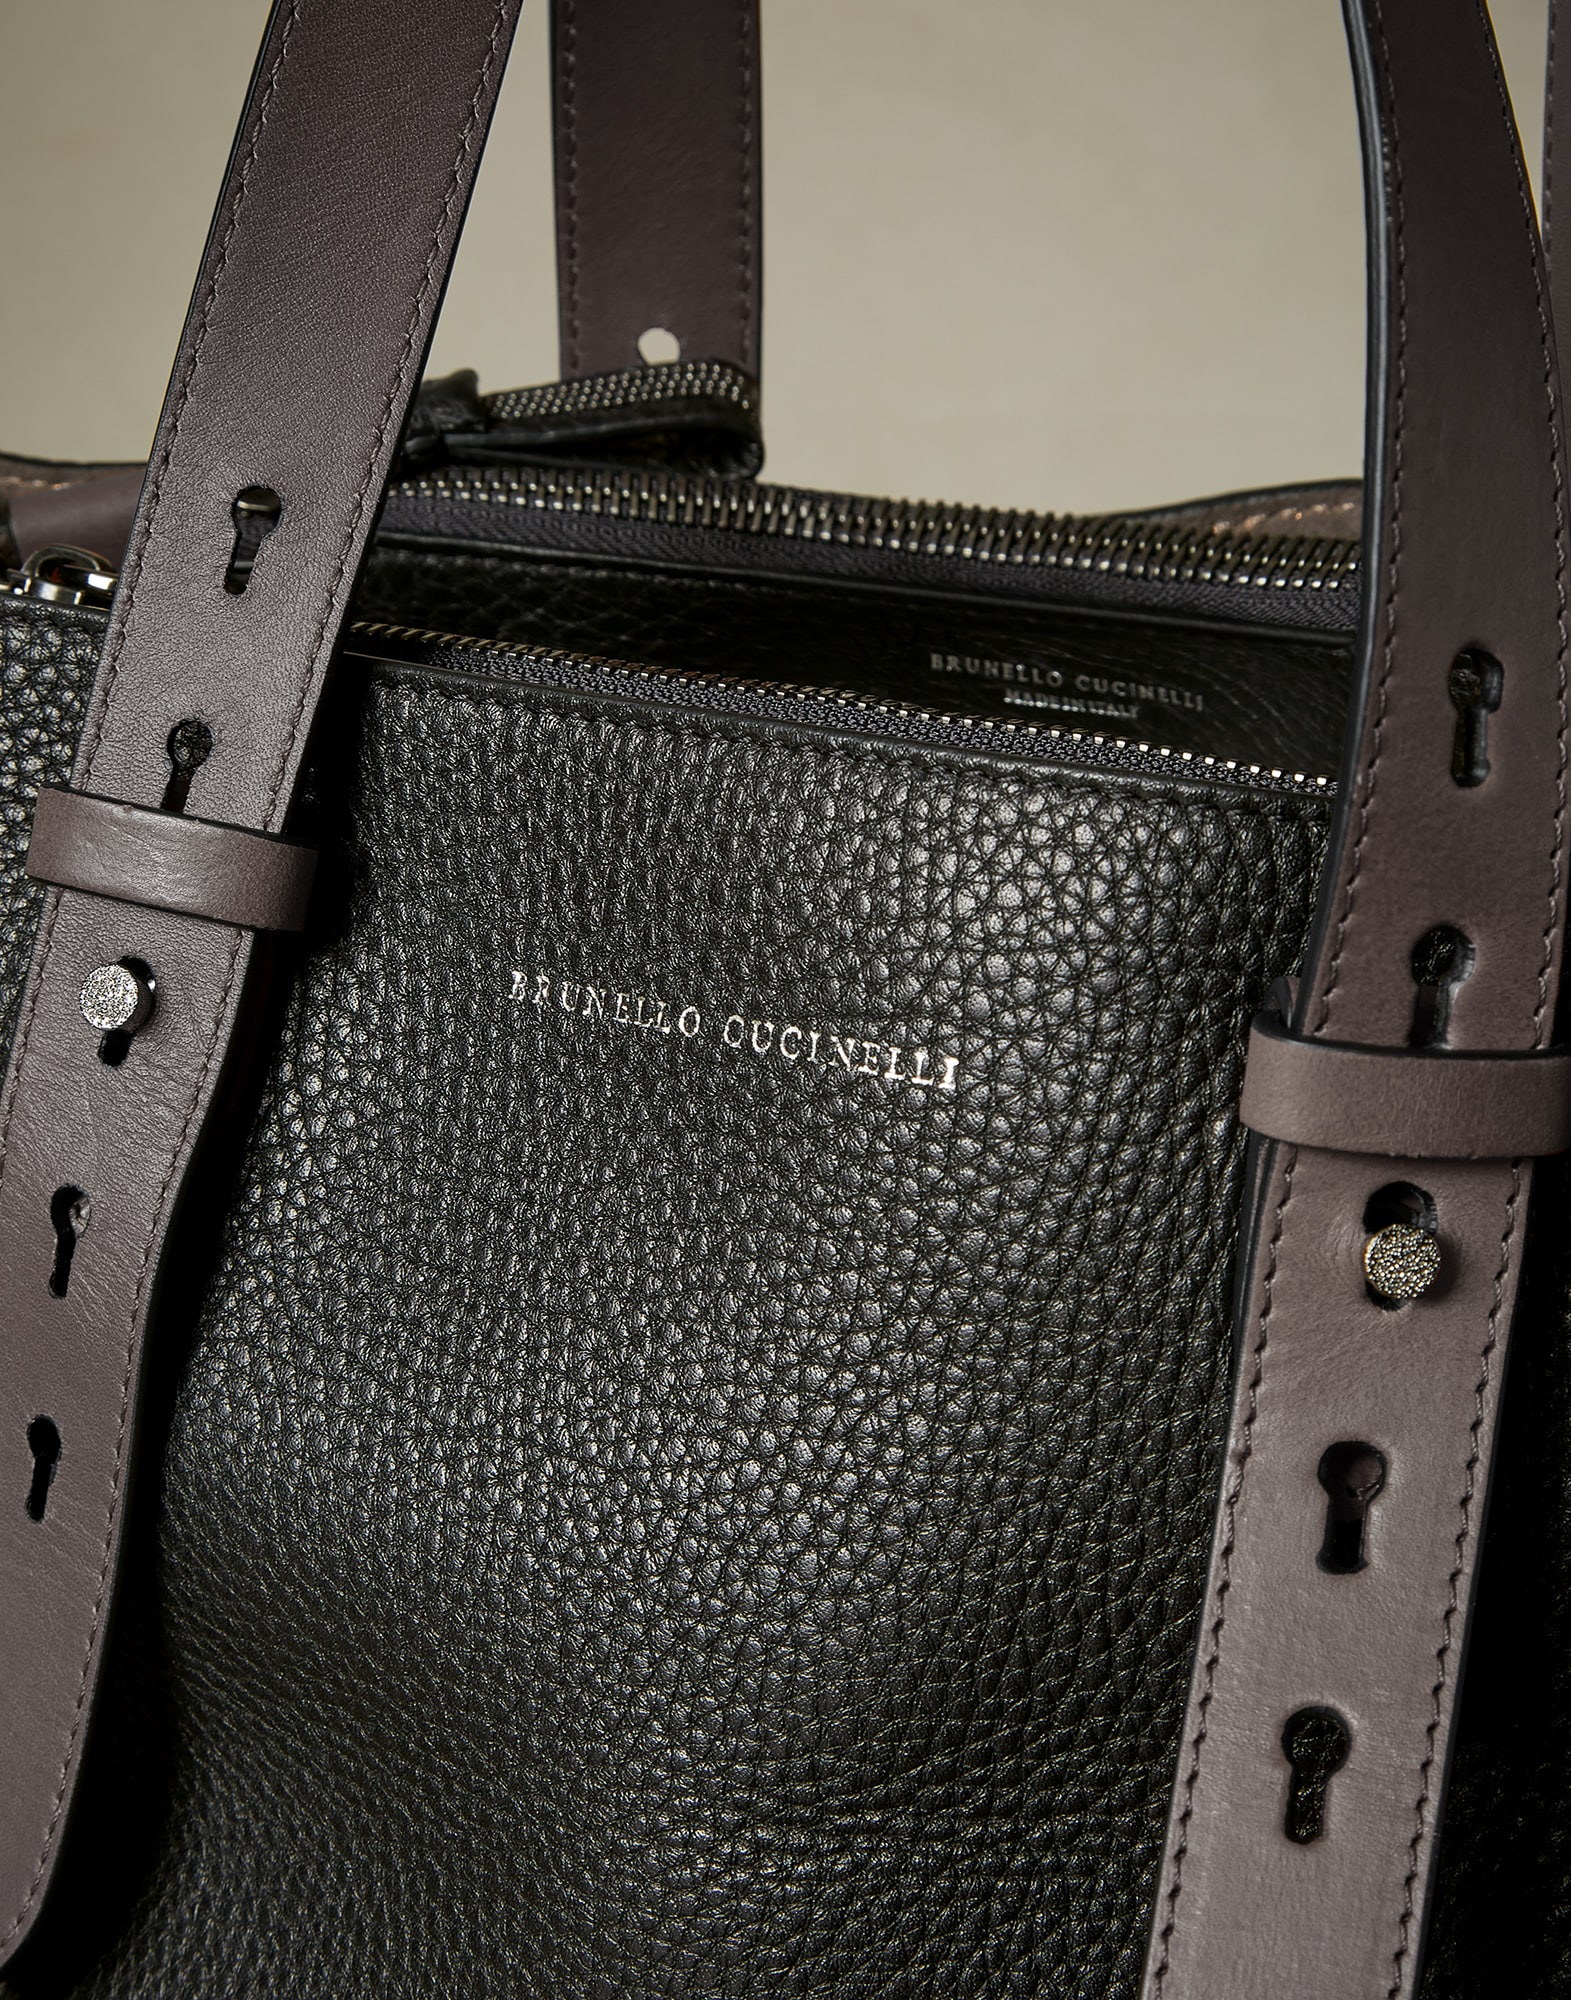 Shopper Bag Black Woman 2 - Brunello Cucinelli